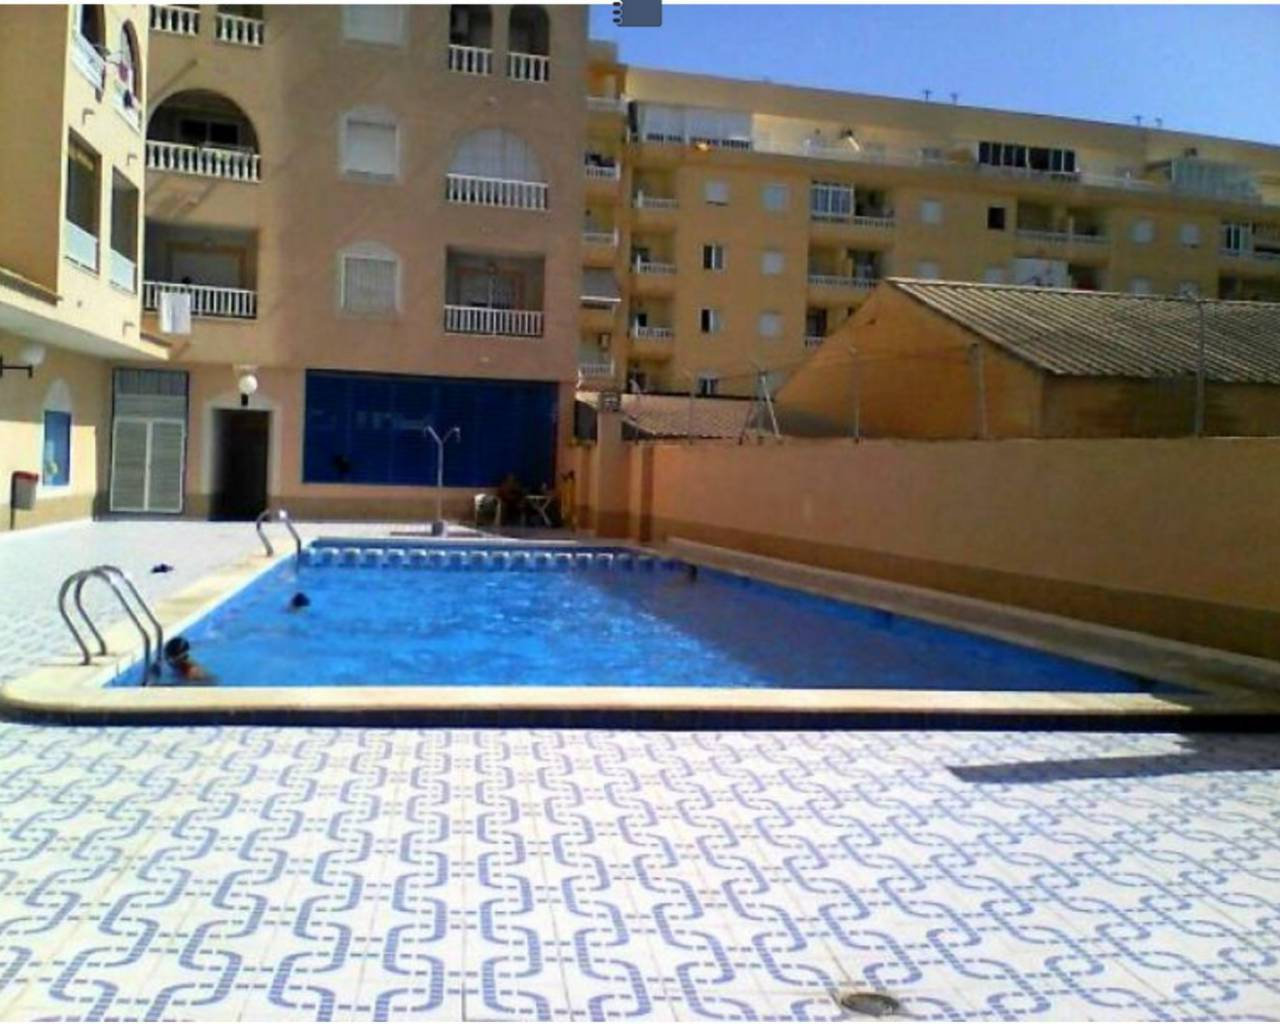 Sale - Appartement - Torrevieja - El molino